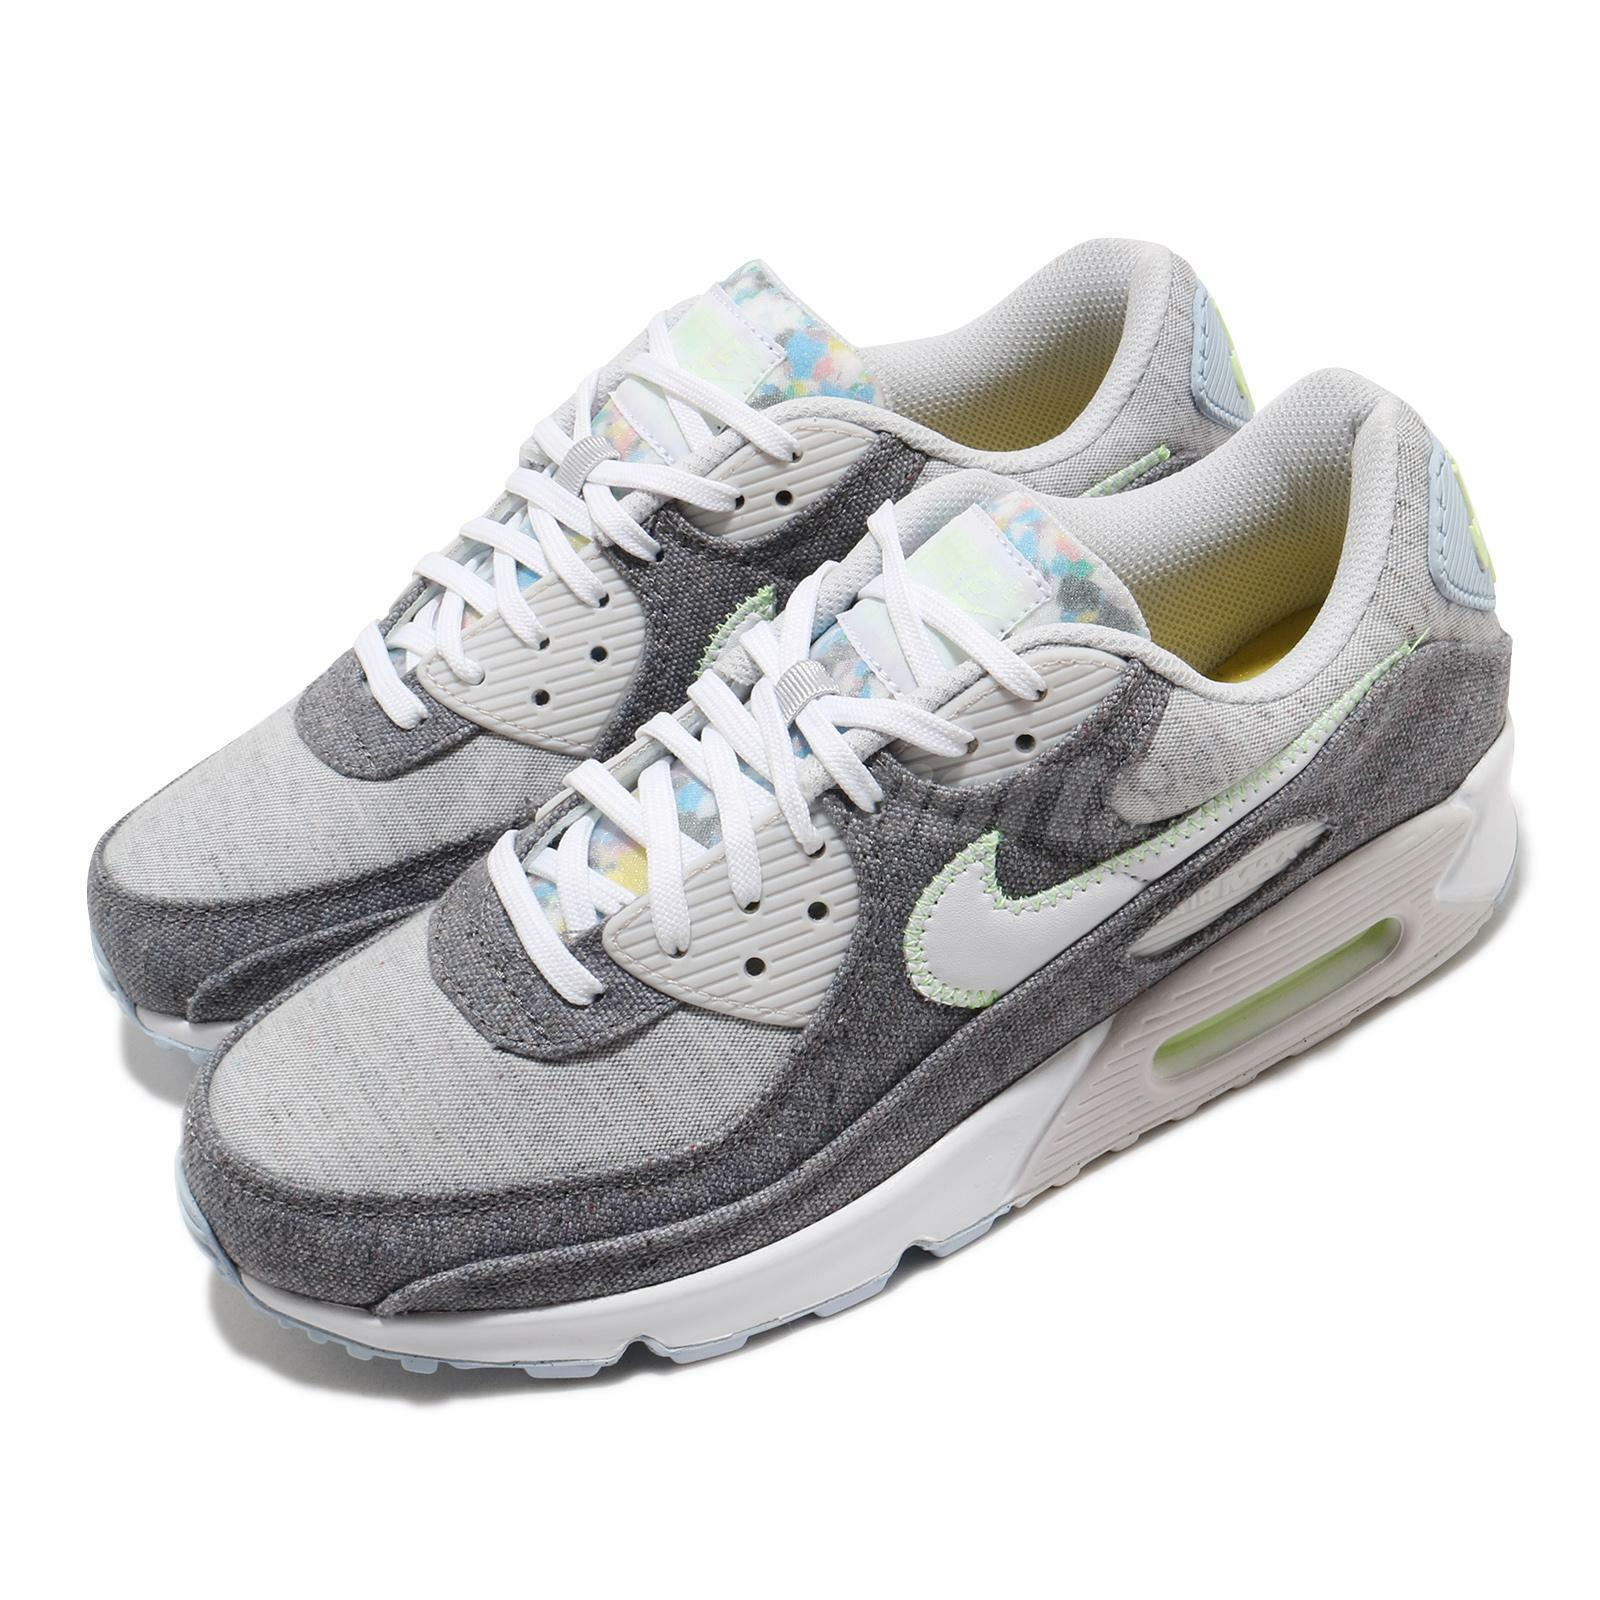 Size 8.5 - Nike Air Max 90 Recycled Canvas Pack 2020 for sale ...